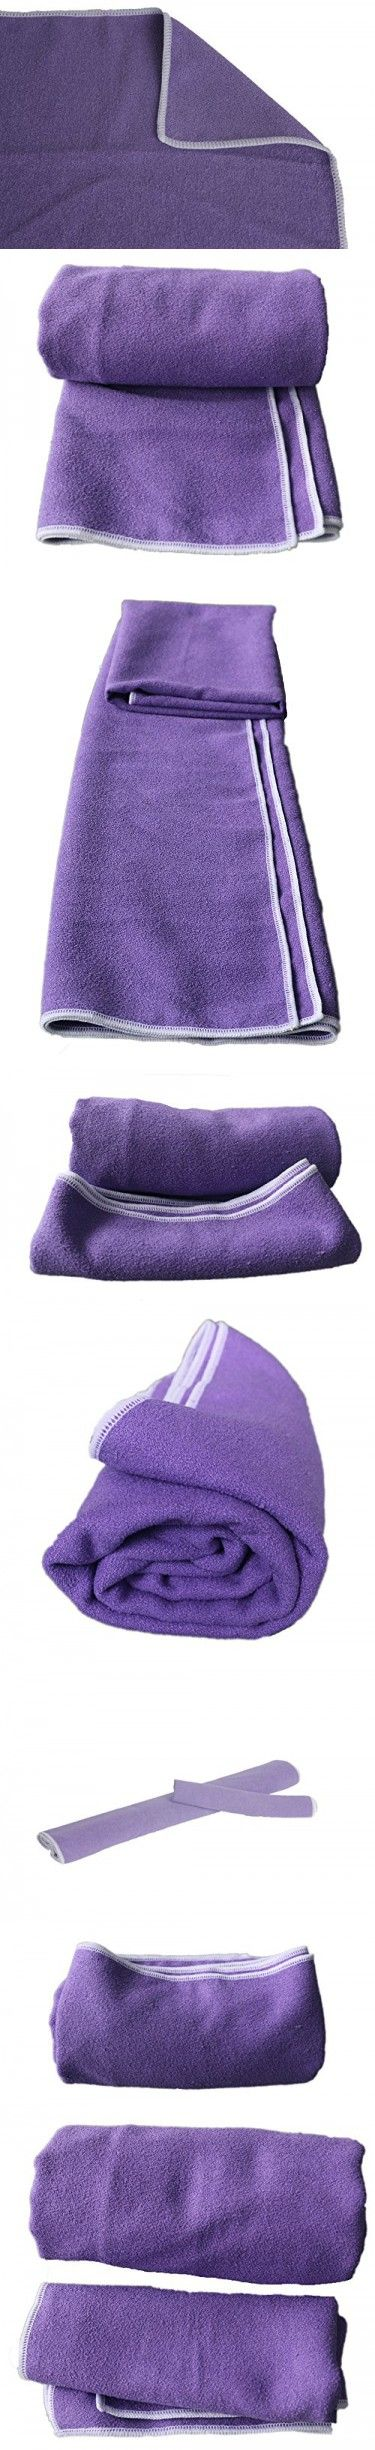 LUXEHOME Microfiber,Anti-Slip,Super Absorbent Hot Yoga Towel Kit, Include 1 Yoga Towel and 1 Hand Towel, Mat Size Length (Purple)